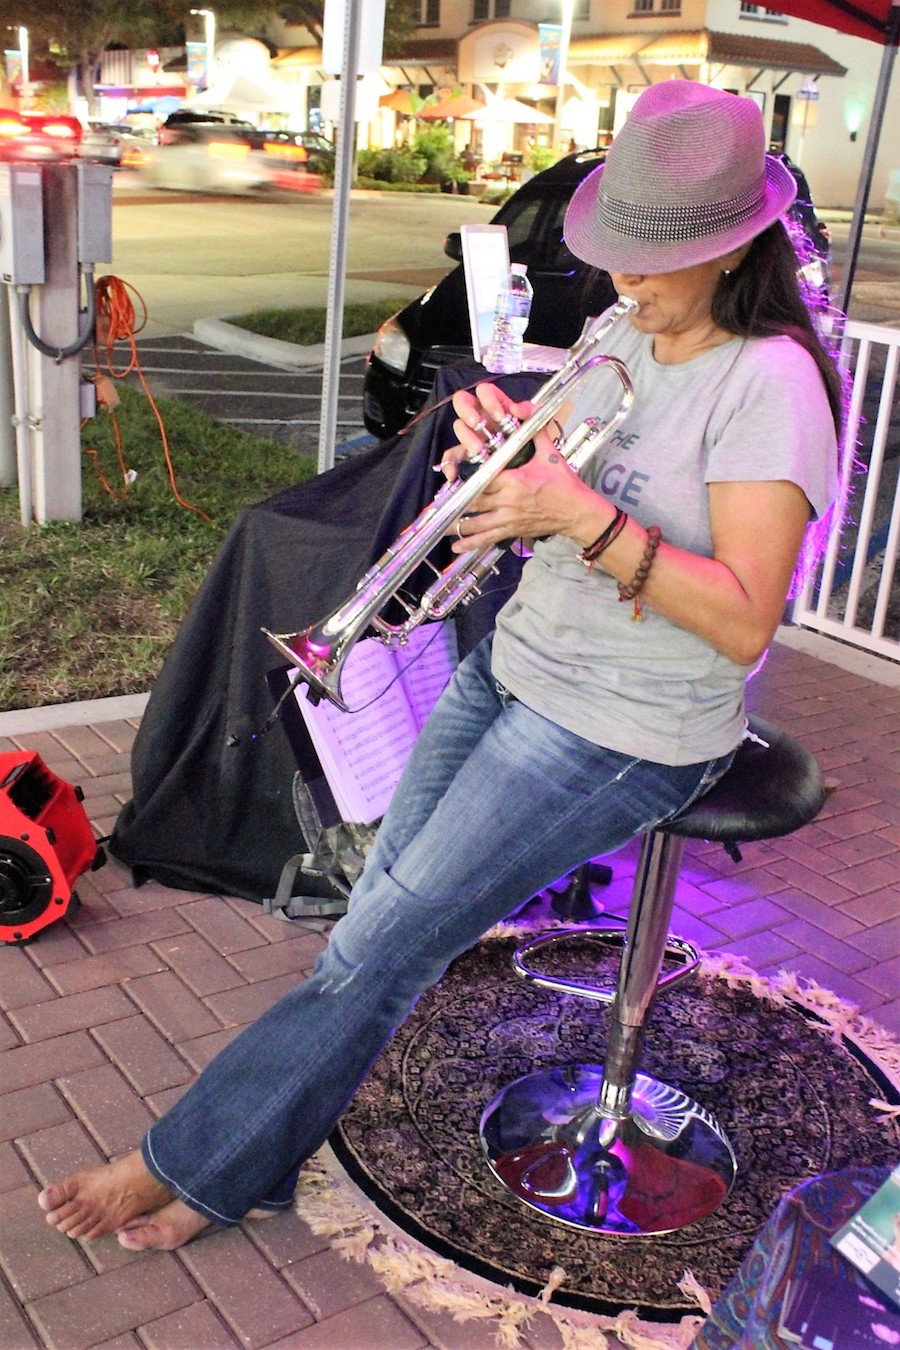 A woman in a fedora hat plays the trumpet while sitting on a stool wearing jeans and no shoes.